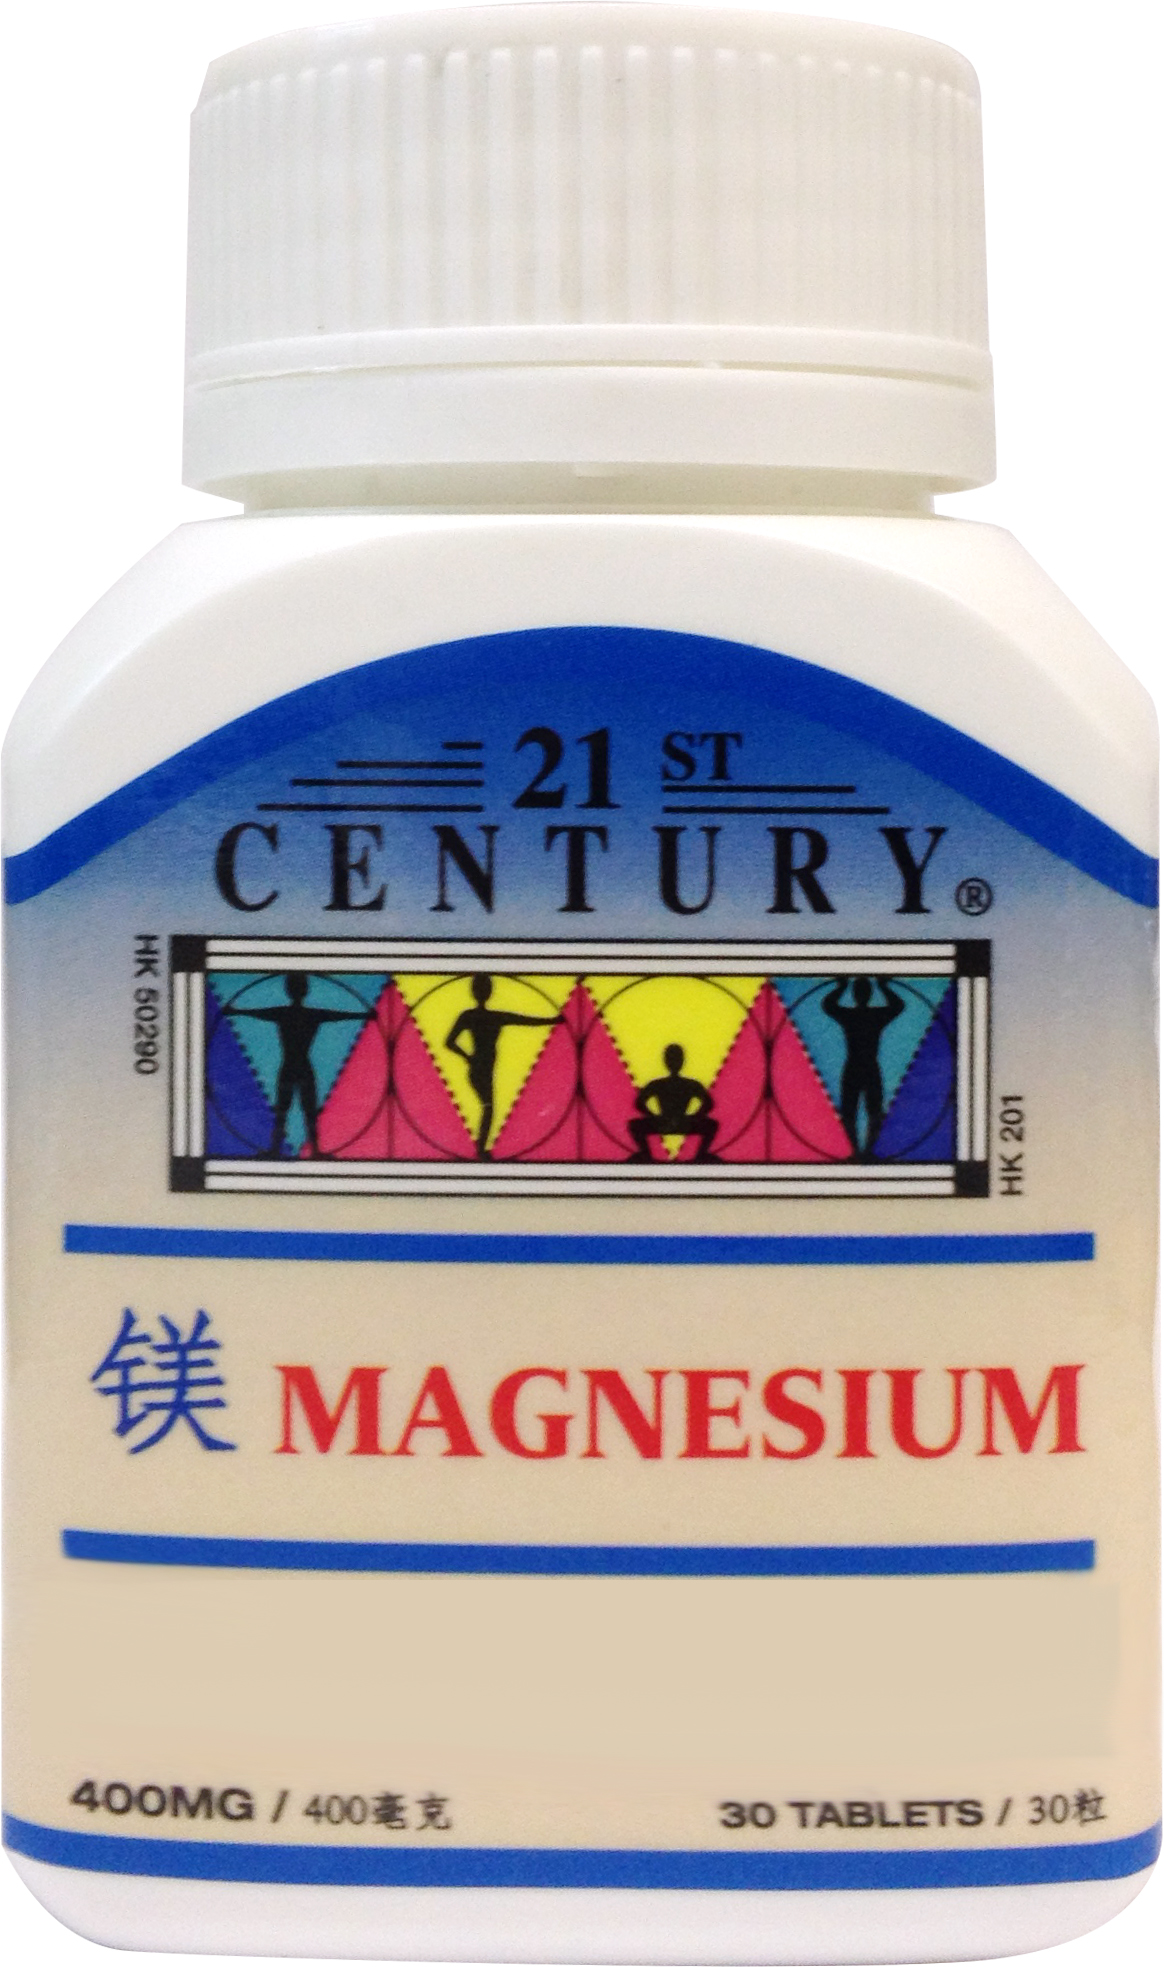 MAGNESIUM 400mg (30 tablets) for heart health